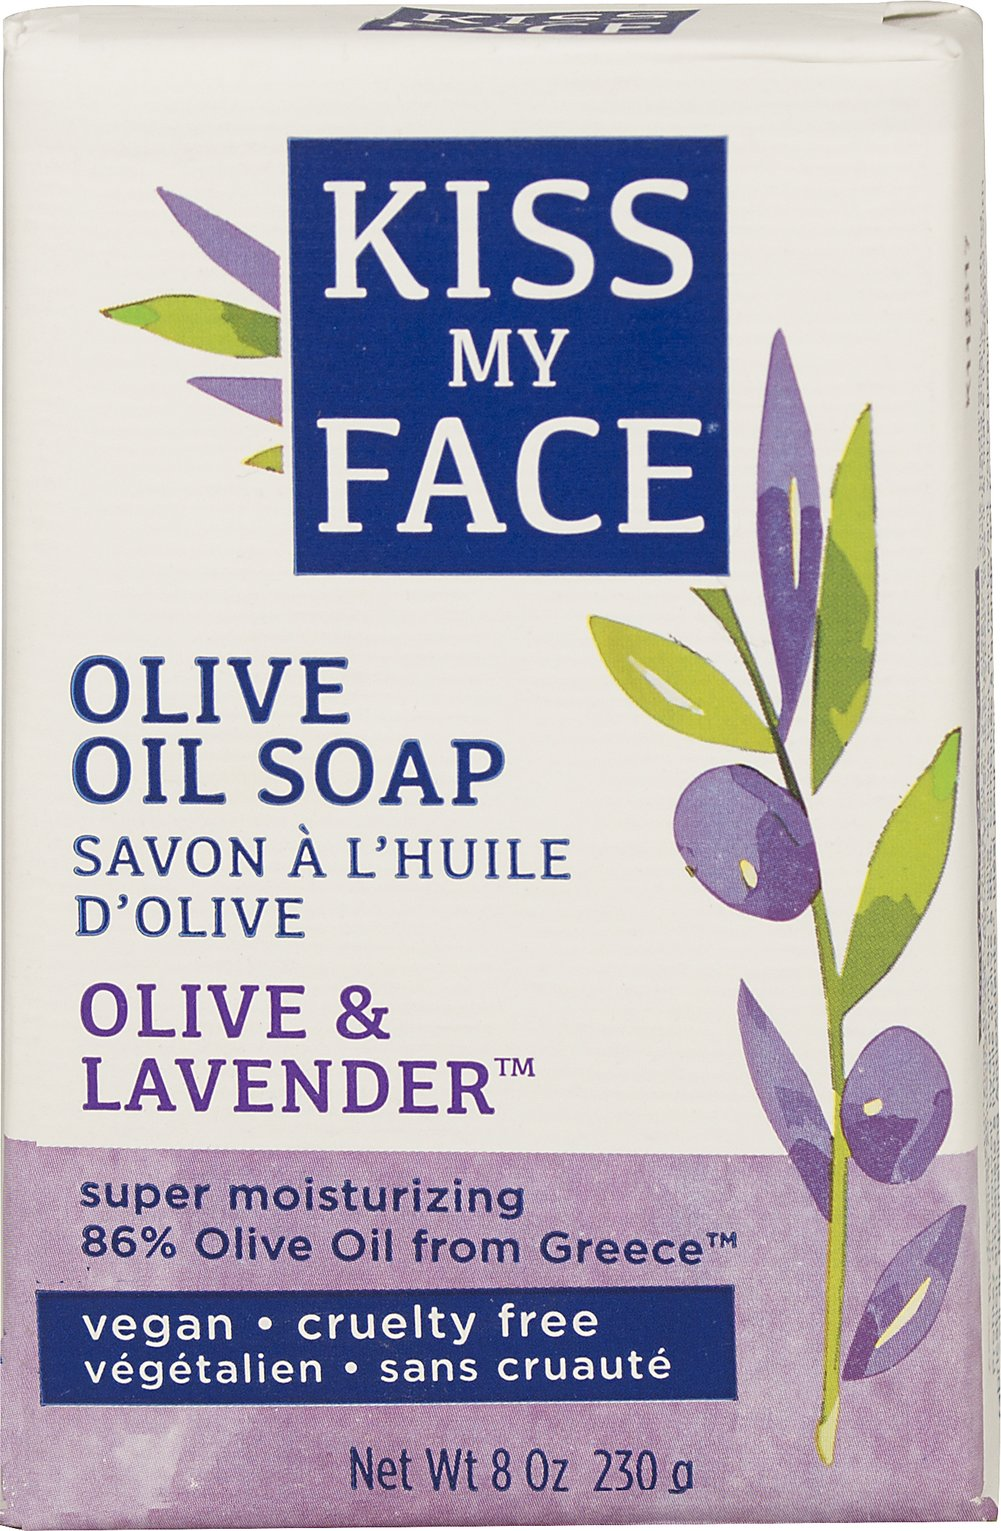 Kiss My Face Olive & Lavender Bar Soap <p><strong>From the Manufacturer's Label:</strong></p><p>- No Phthalates</p><p>- No Artificial Color</p><p>- Biodegradable</p><p>- Gluten Free</p><p>- No Animal Ingredients</p><p>- No Animal Testing</p> 8 oz Bar  $2.59